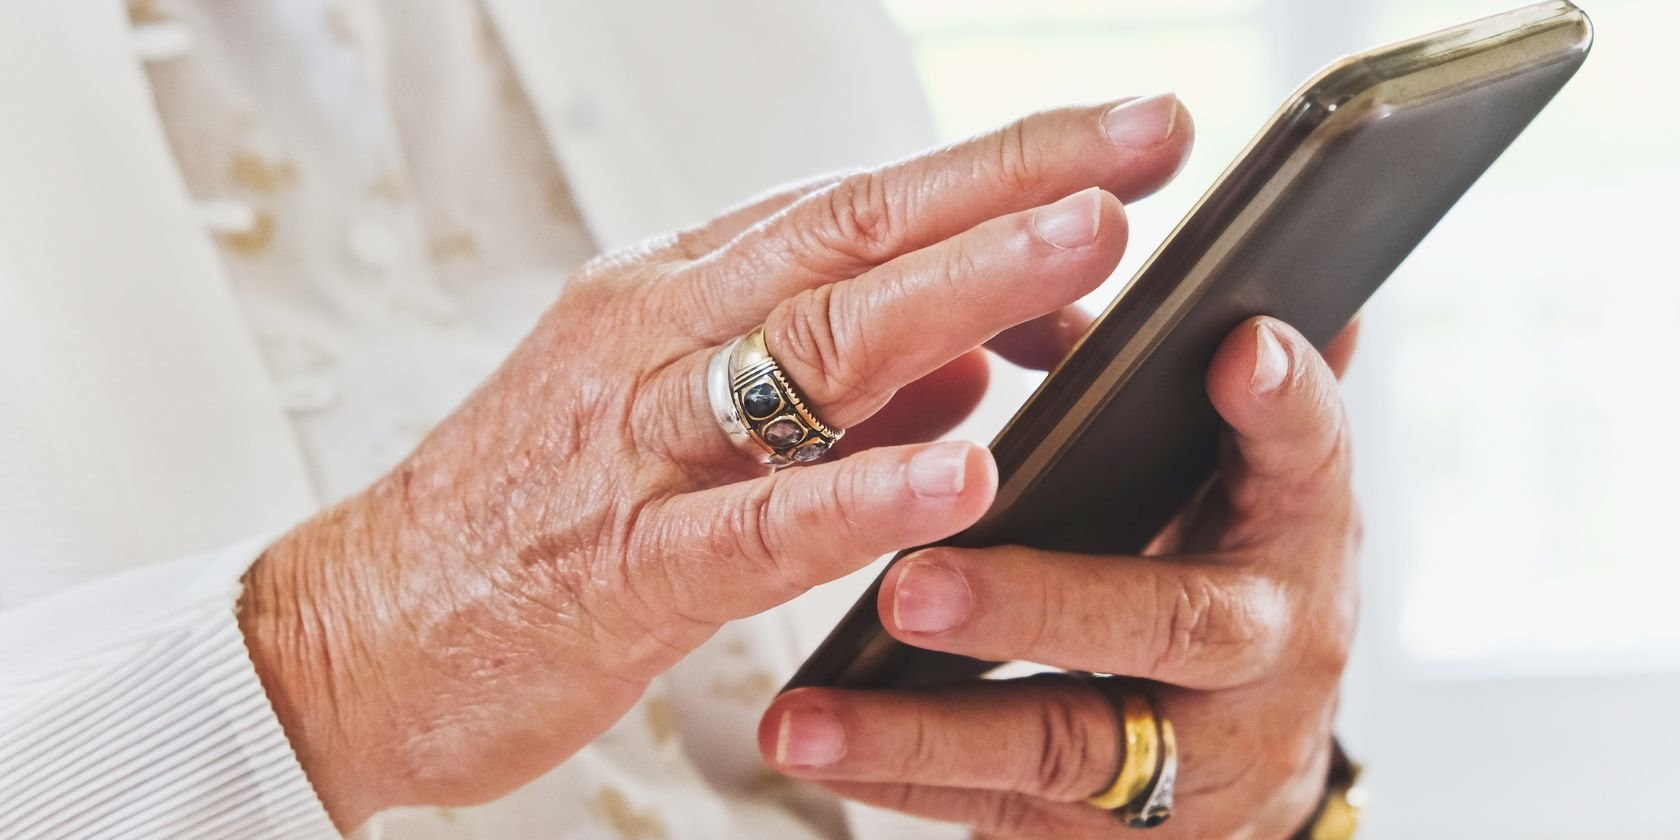 10 Useful iPhone Tips for Seniors